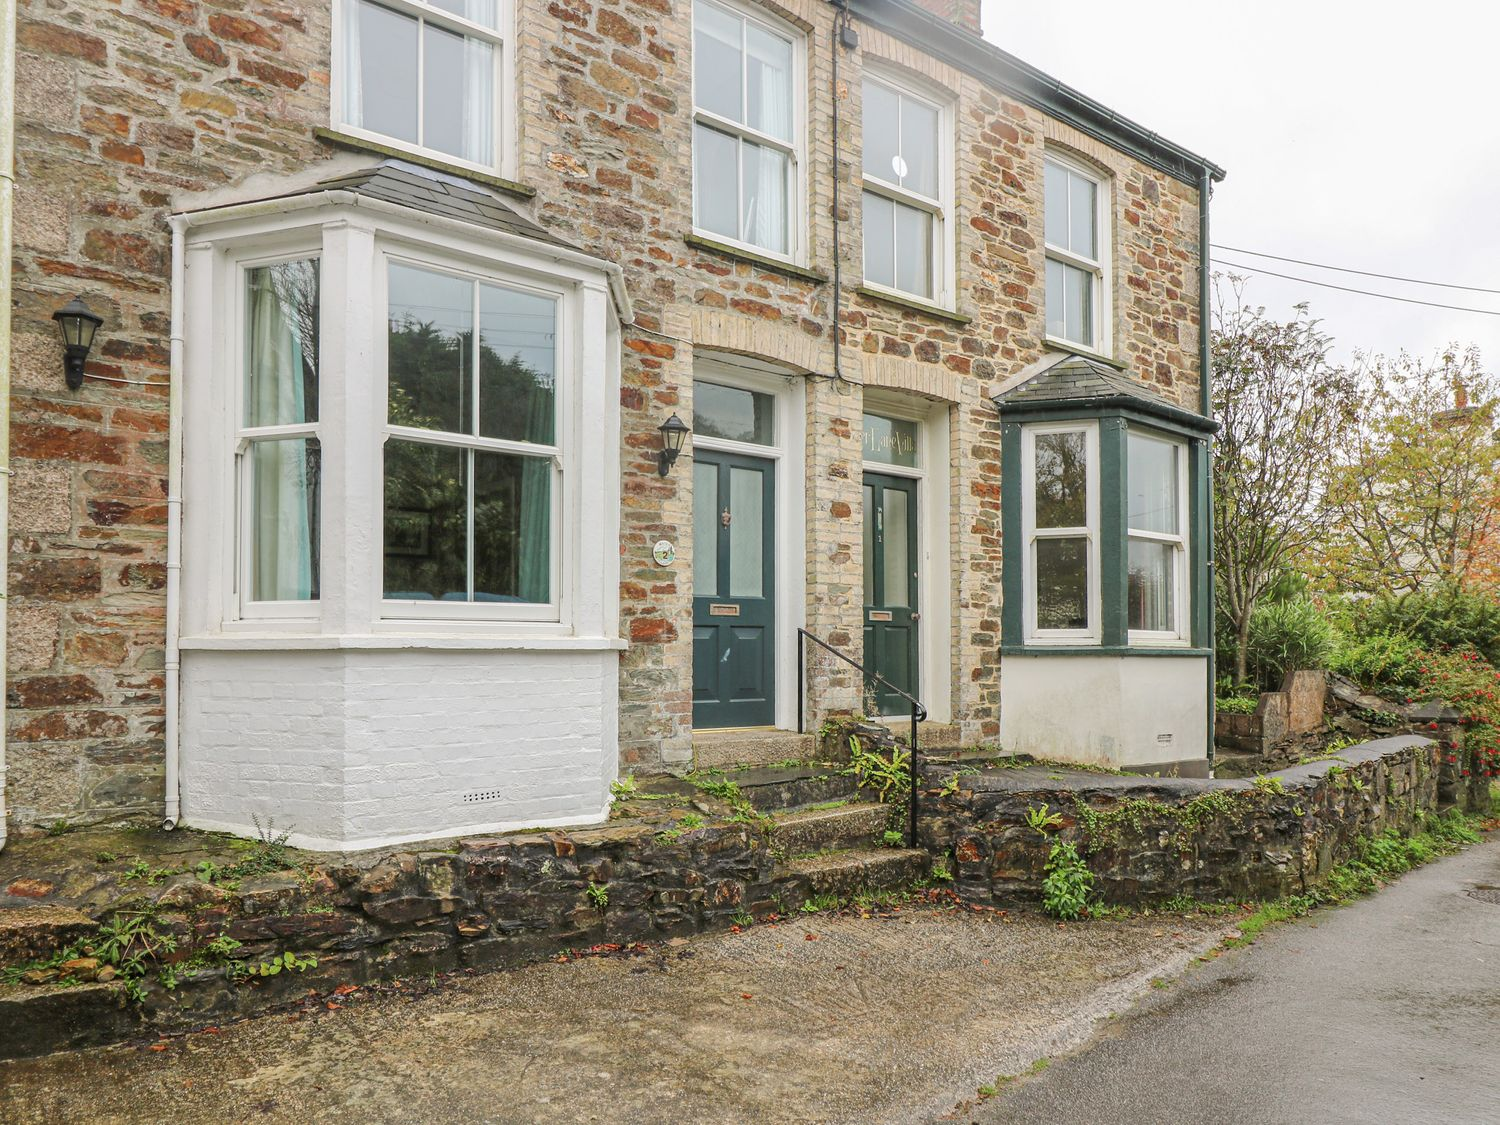 2 Water Lane - Cornwall - 976372 - photo 1